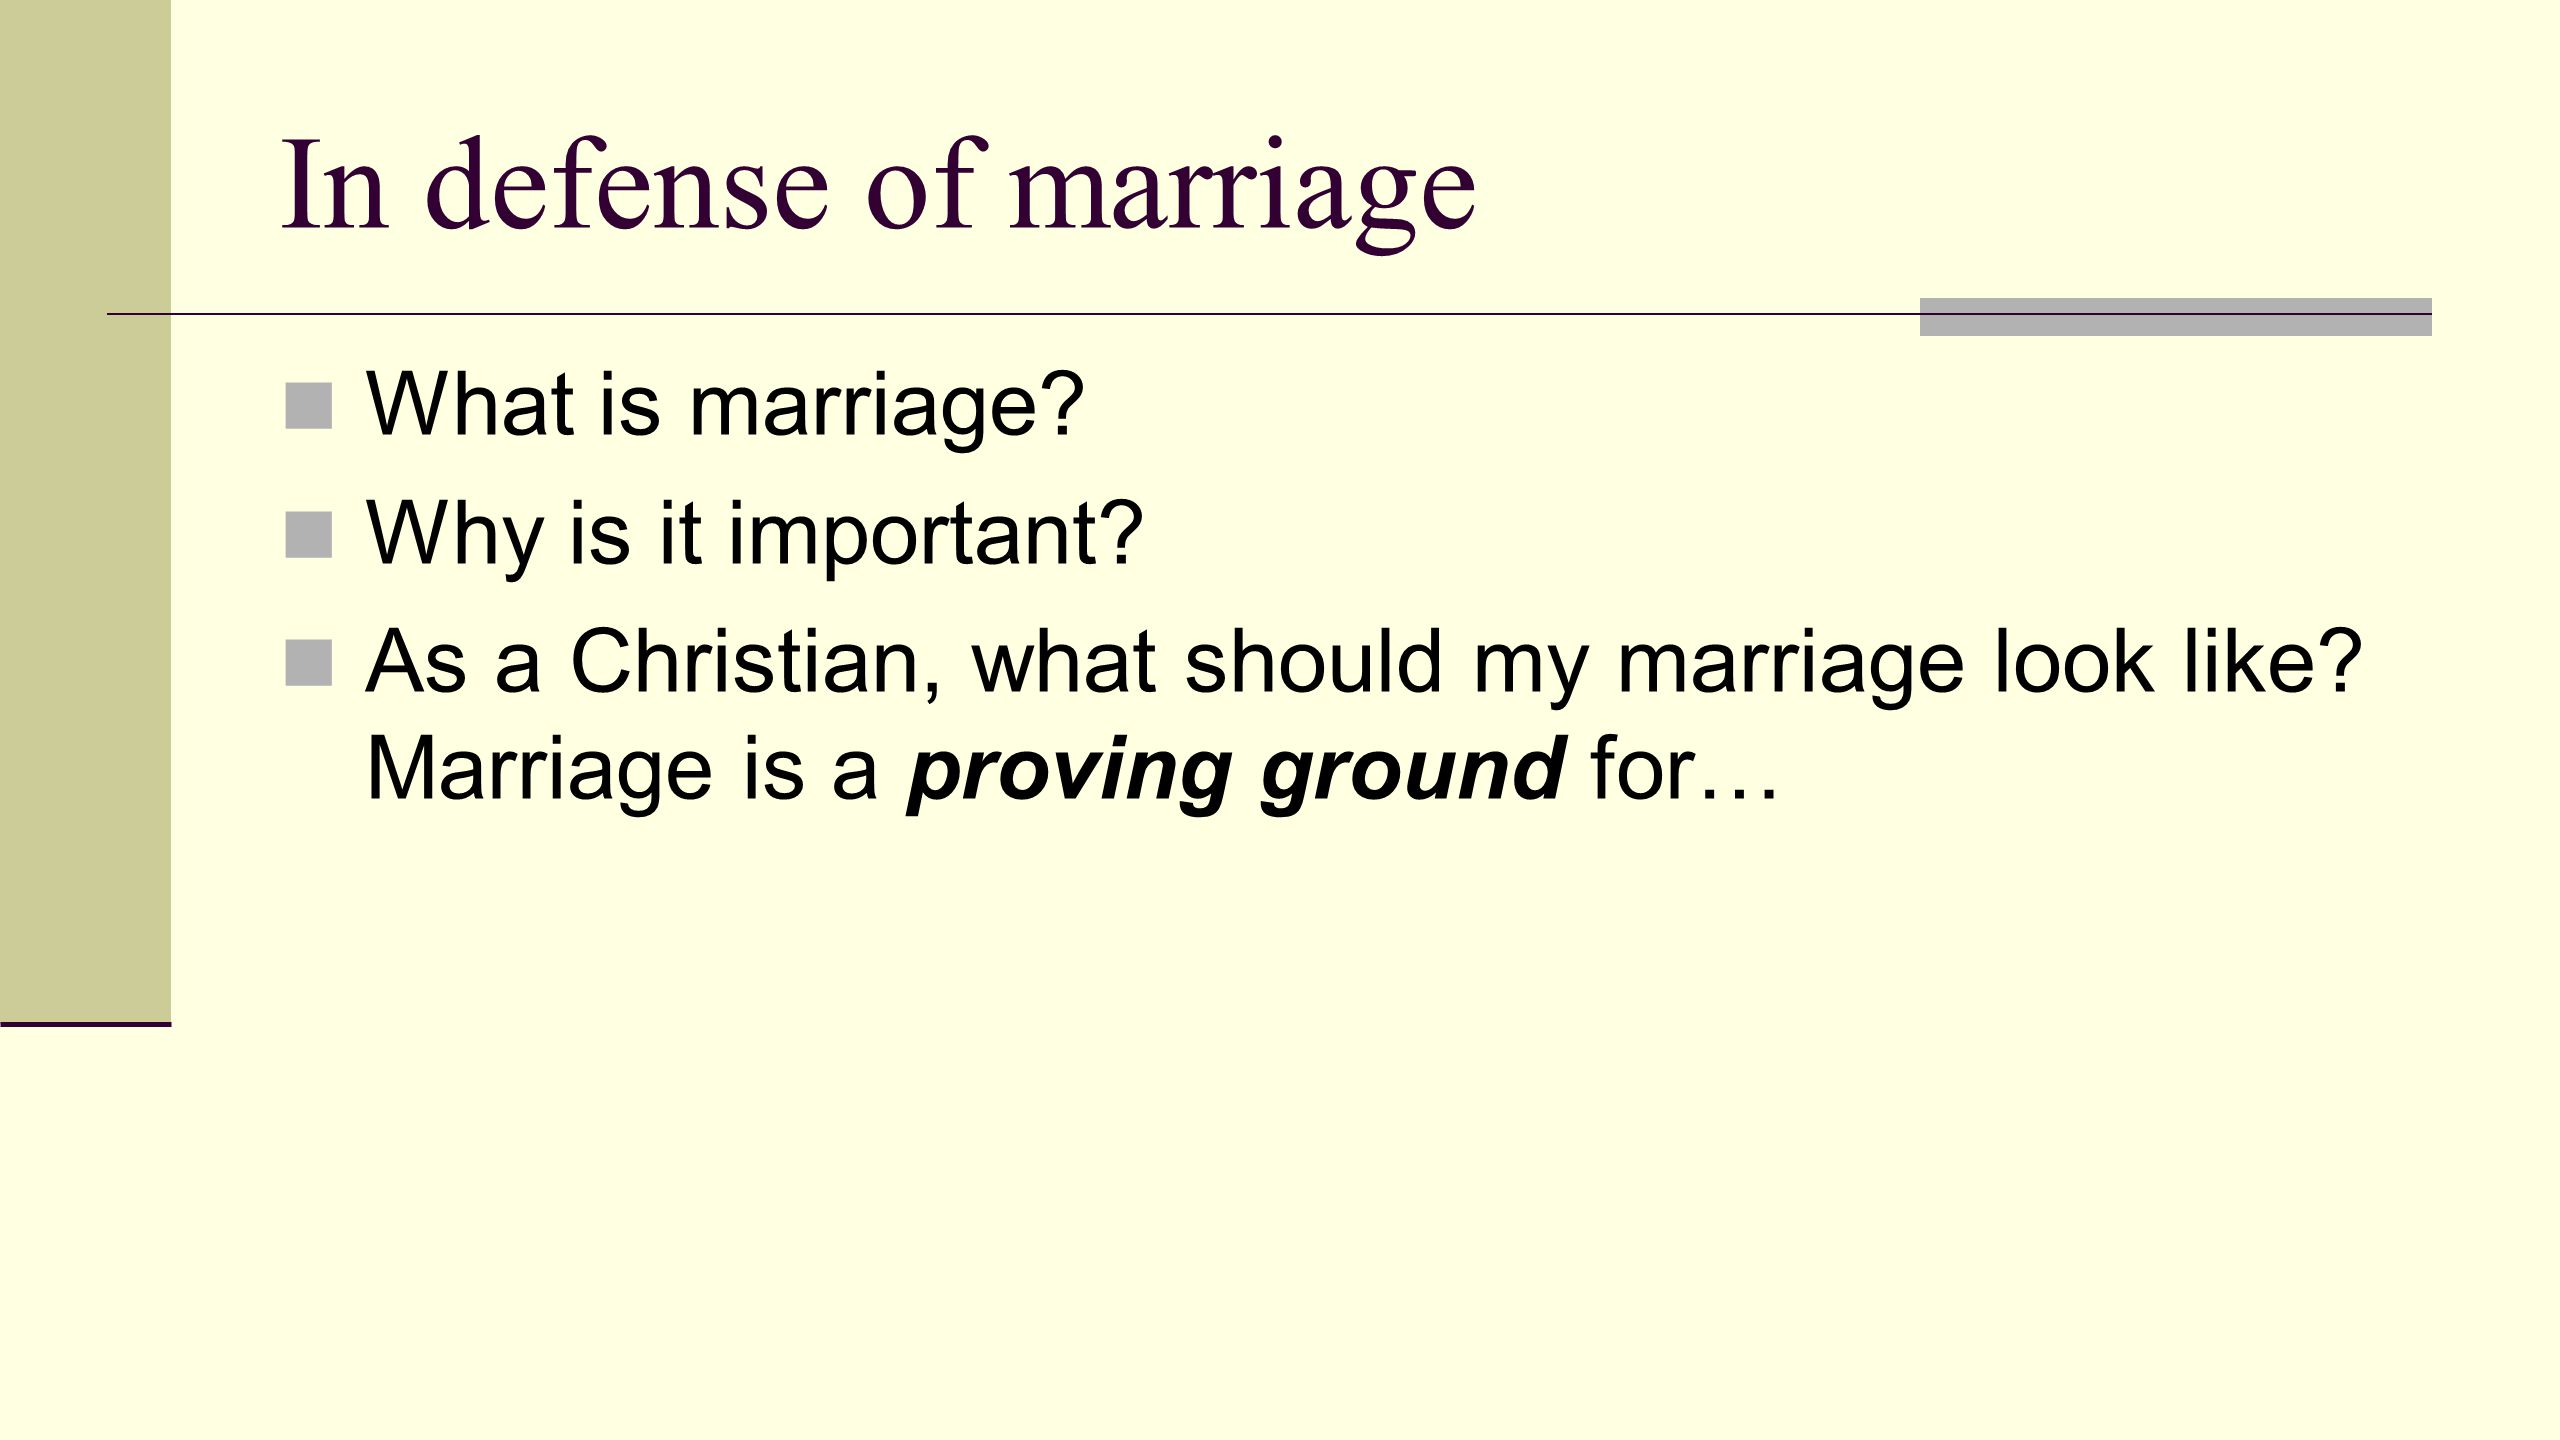 In defense of marriage What is marriage? Why is it important? As a Christian, what should my marriage look like? Marriage is a proving ground for…